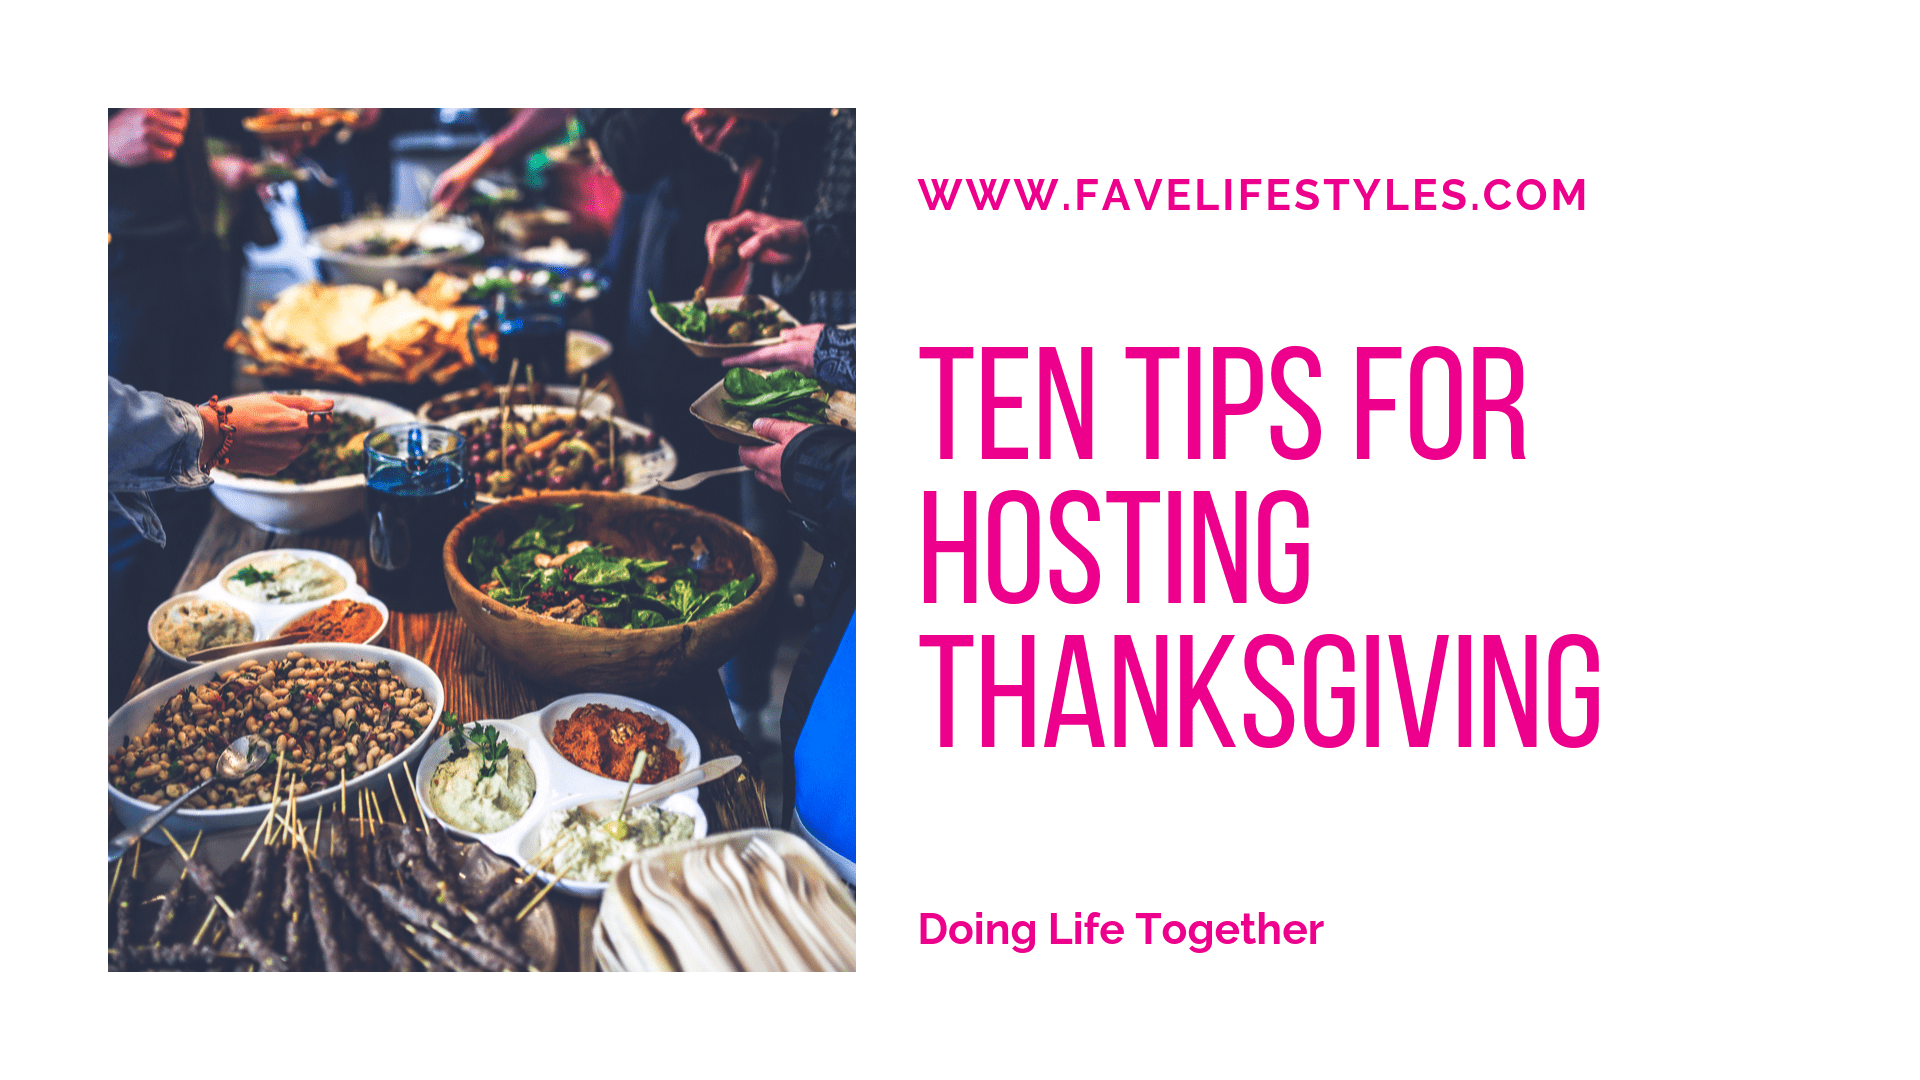 Ten Tips For Hosting Thanksgiving